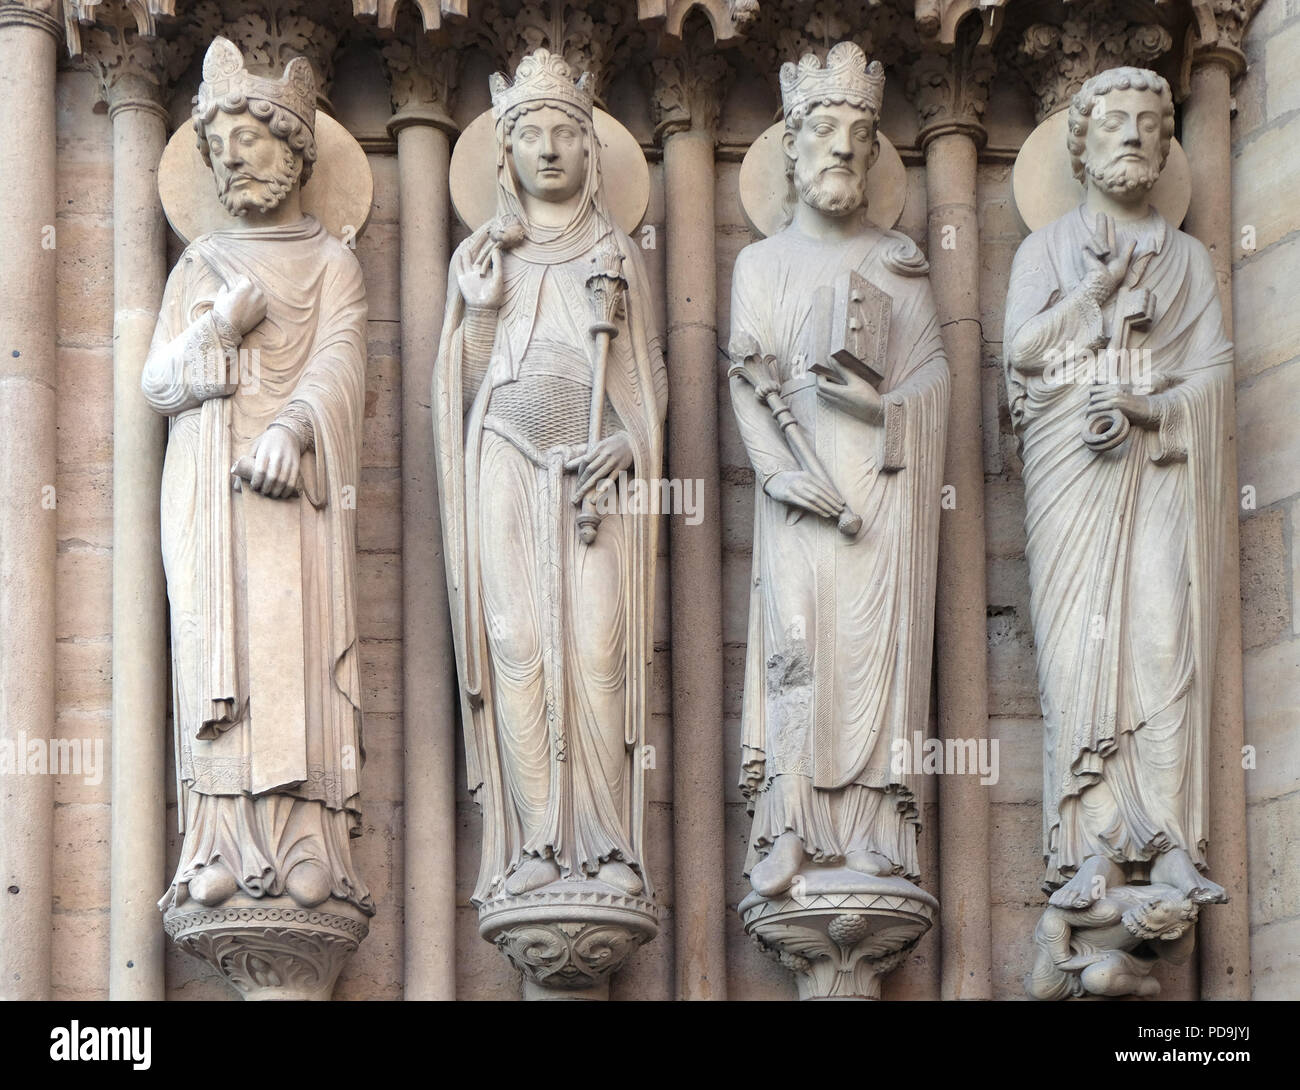 King, the Queen of Sheba, King Solomon and Saint Peter, Portal of St. Anne, Notre Dame Cathedral, Paris, UNESCO World Heritage Site in Paris, France Stock Photo